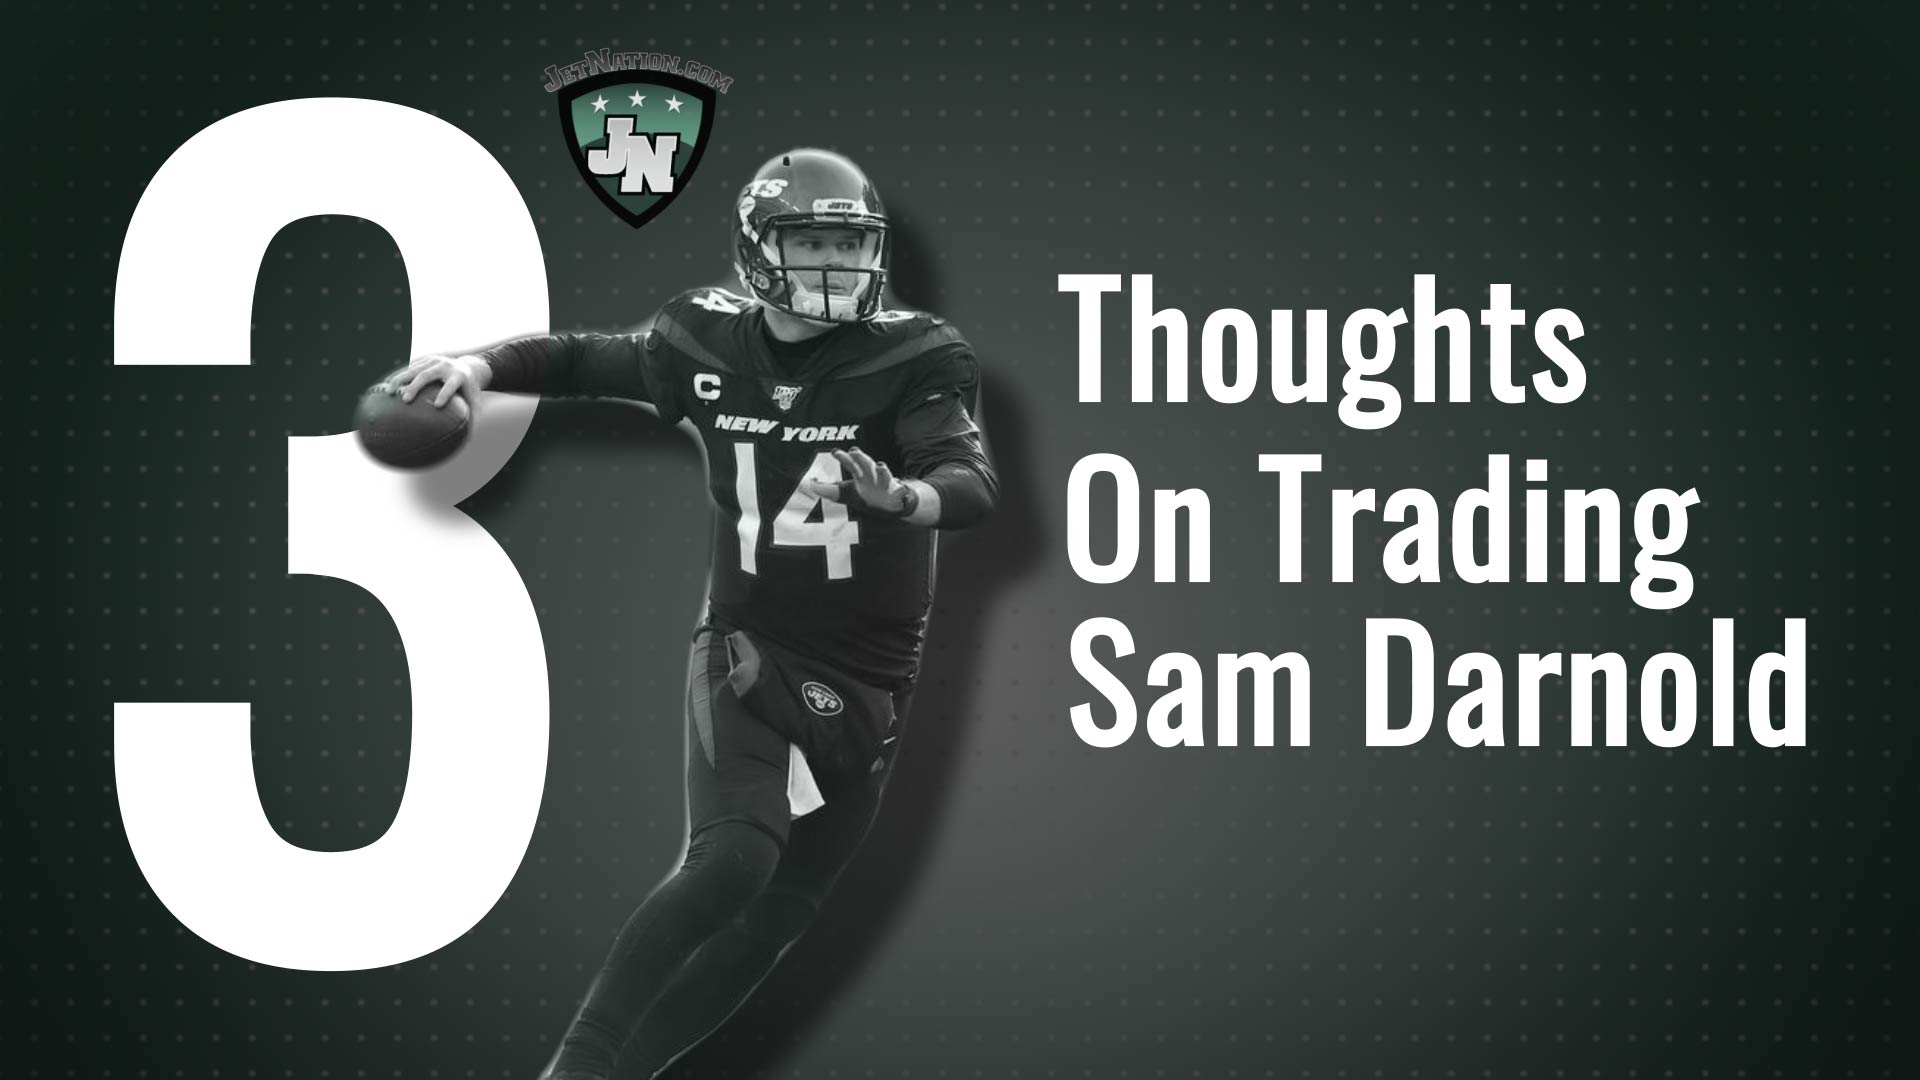 Sam Darnold Traded